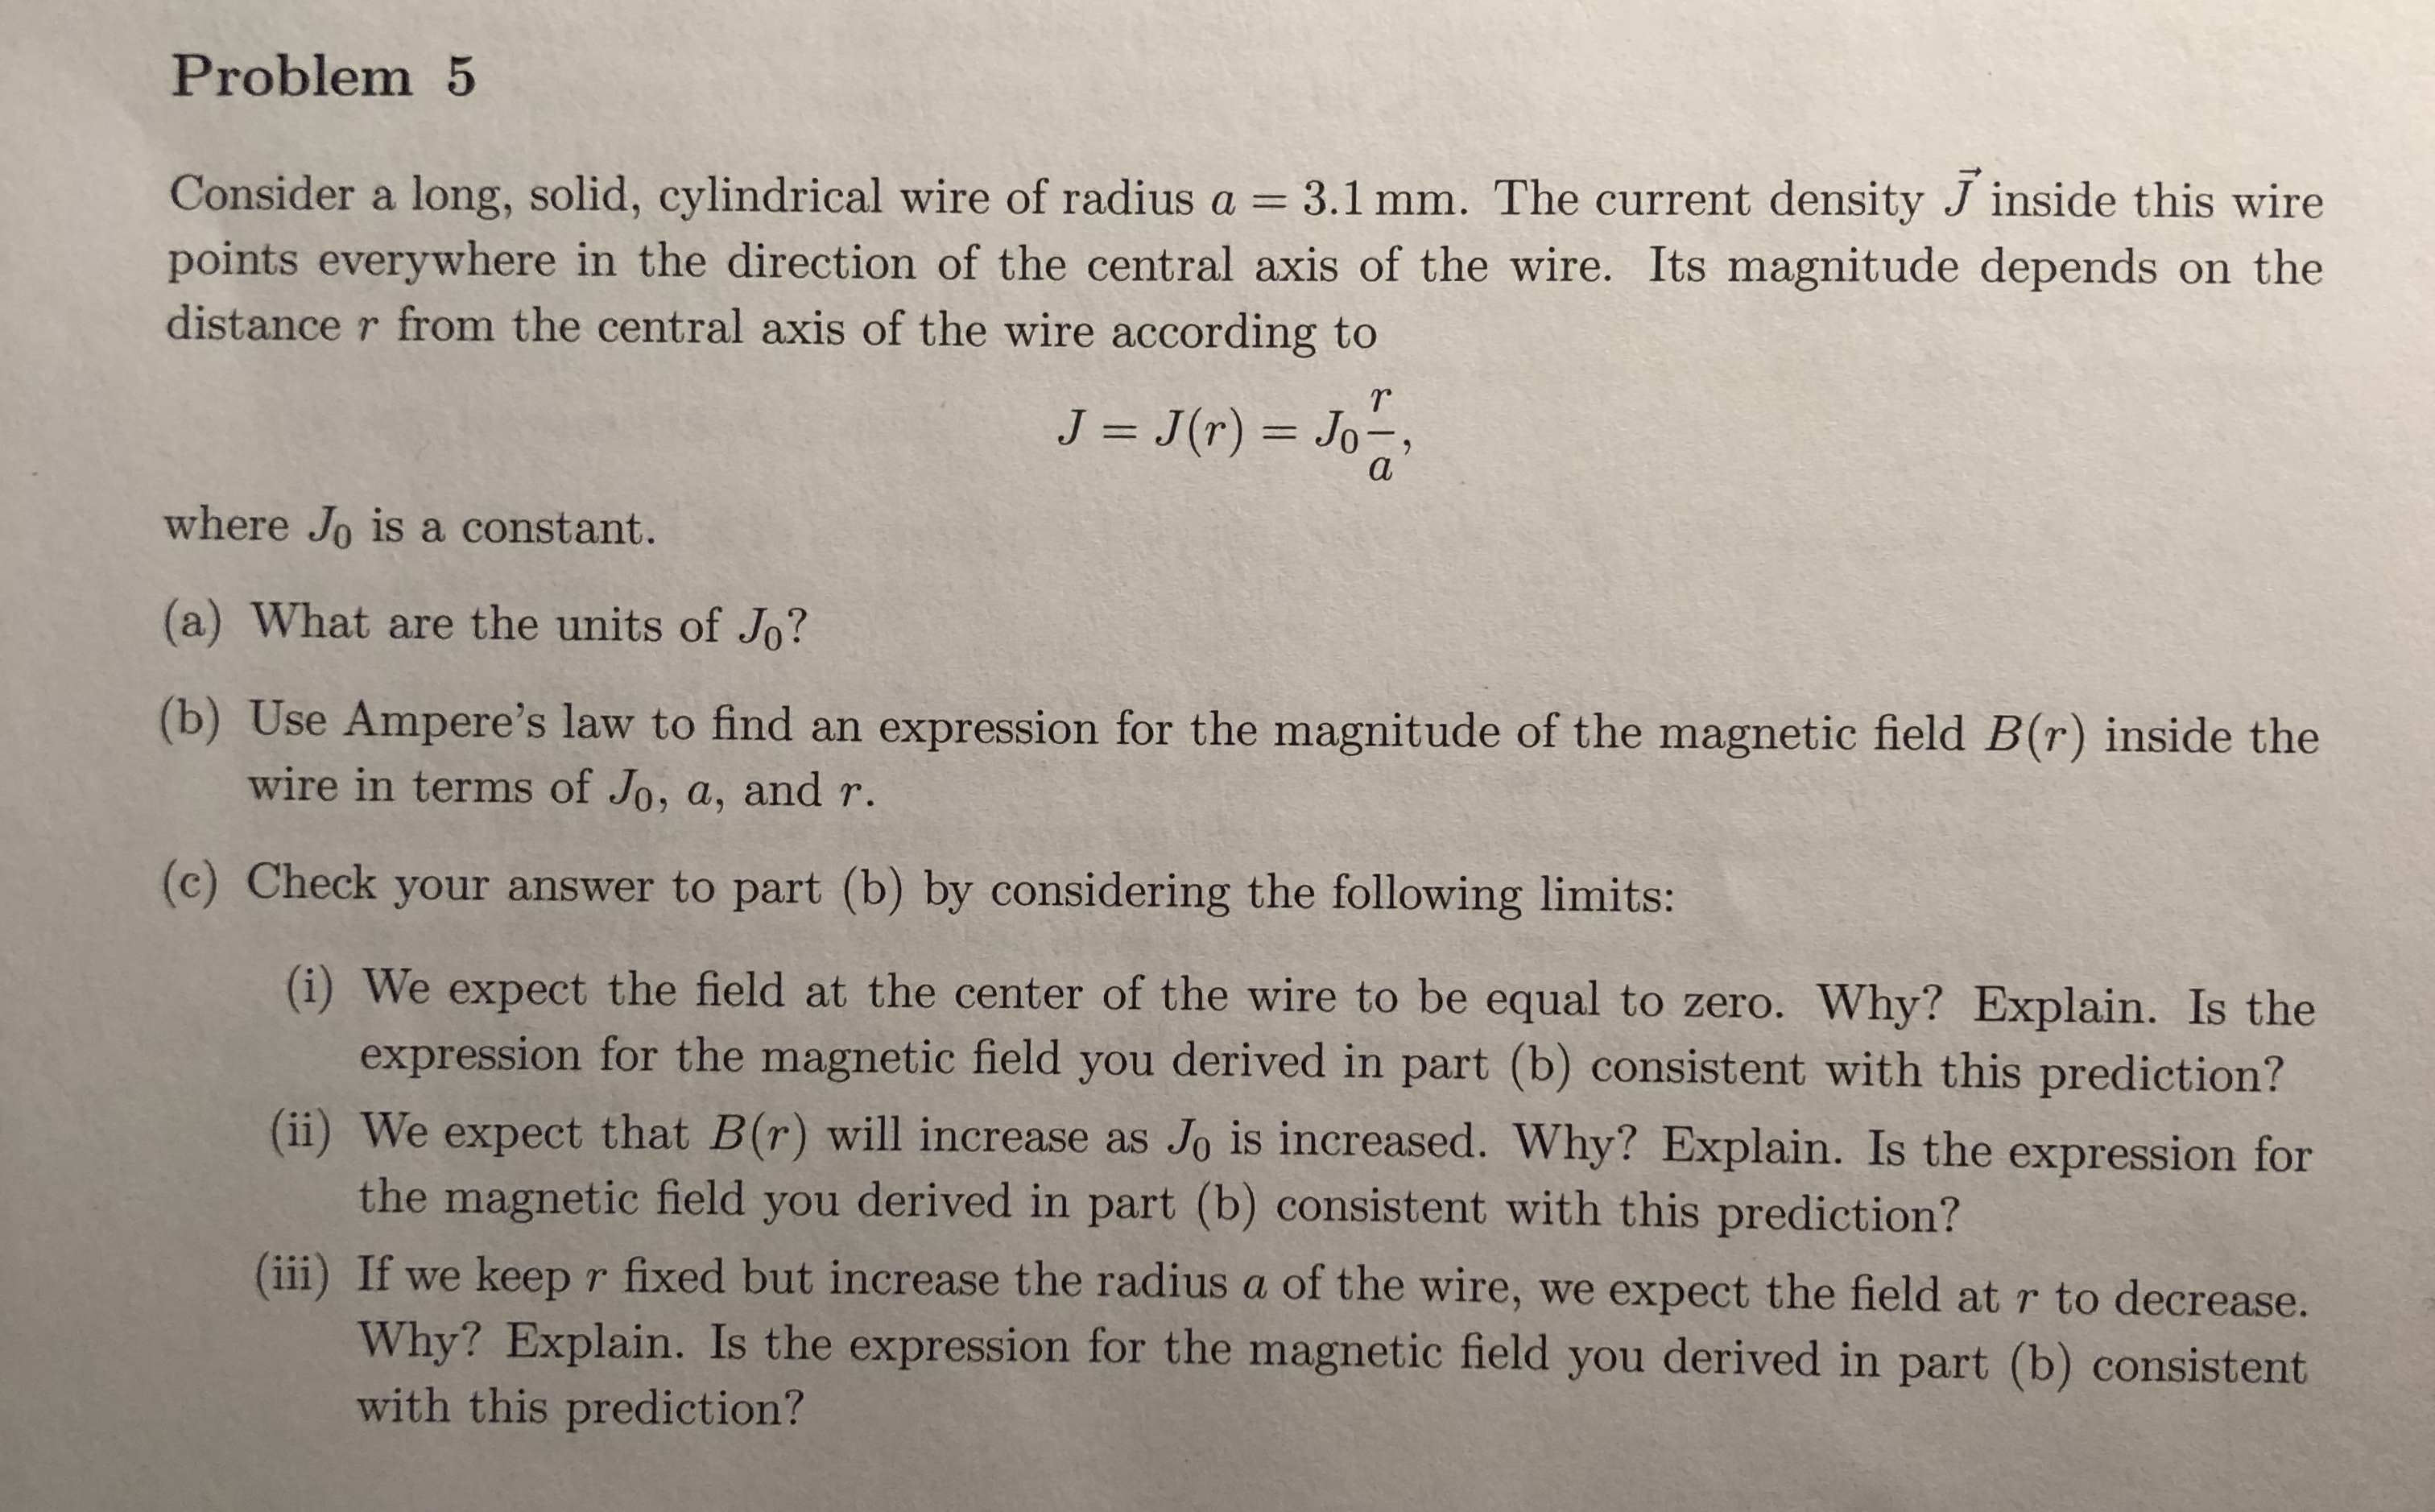 Problem5 Consider a long, solid, cylindrical wire of radius a 3.1 mm. The current density J inside this wire points everywhere in the direction of the central axis of the wire. Its magnitude depends on the distance r from the central axis of the wire according to Tr where Jo is a constant. (a) What are the units of Jo? (b) Use Ampere's law to find an expression for the magnitude of the magnetic field B(r) inside the wire in terms of Jo, a, and r (c) Check your answer to part (b) by considering the following limits: (i) We expect the field at the center of the wire to be equal to zero. Why? Explain. Is the expression for the magnetic field you derived in part (b) consistent with this prediction? (i) We expect that B(r) will increase as Jo is increased. Why? Explain. Is the expression for the magnetic field you derived in part (b) consistent with this prediction? (ii) If we keep r fixed but increase the radius a of the wire, we expect the field at r to decrease. Why? Explain. Is the expression for the magnetic field you derived in part (b) consistent with this prediction?